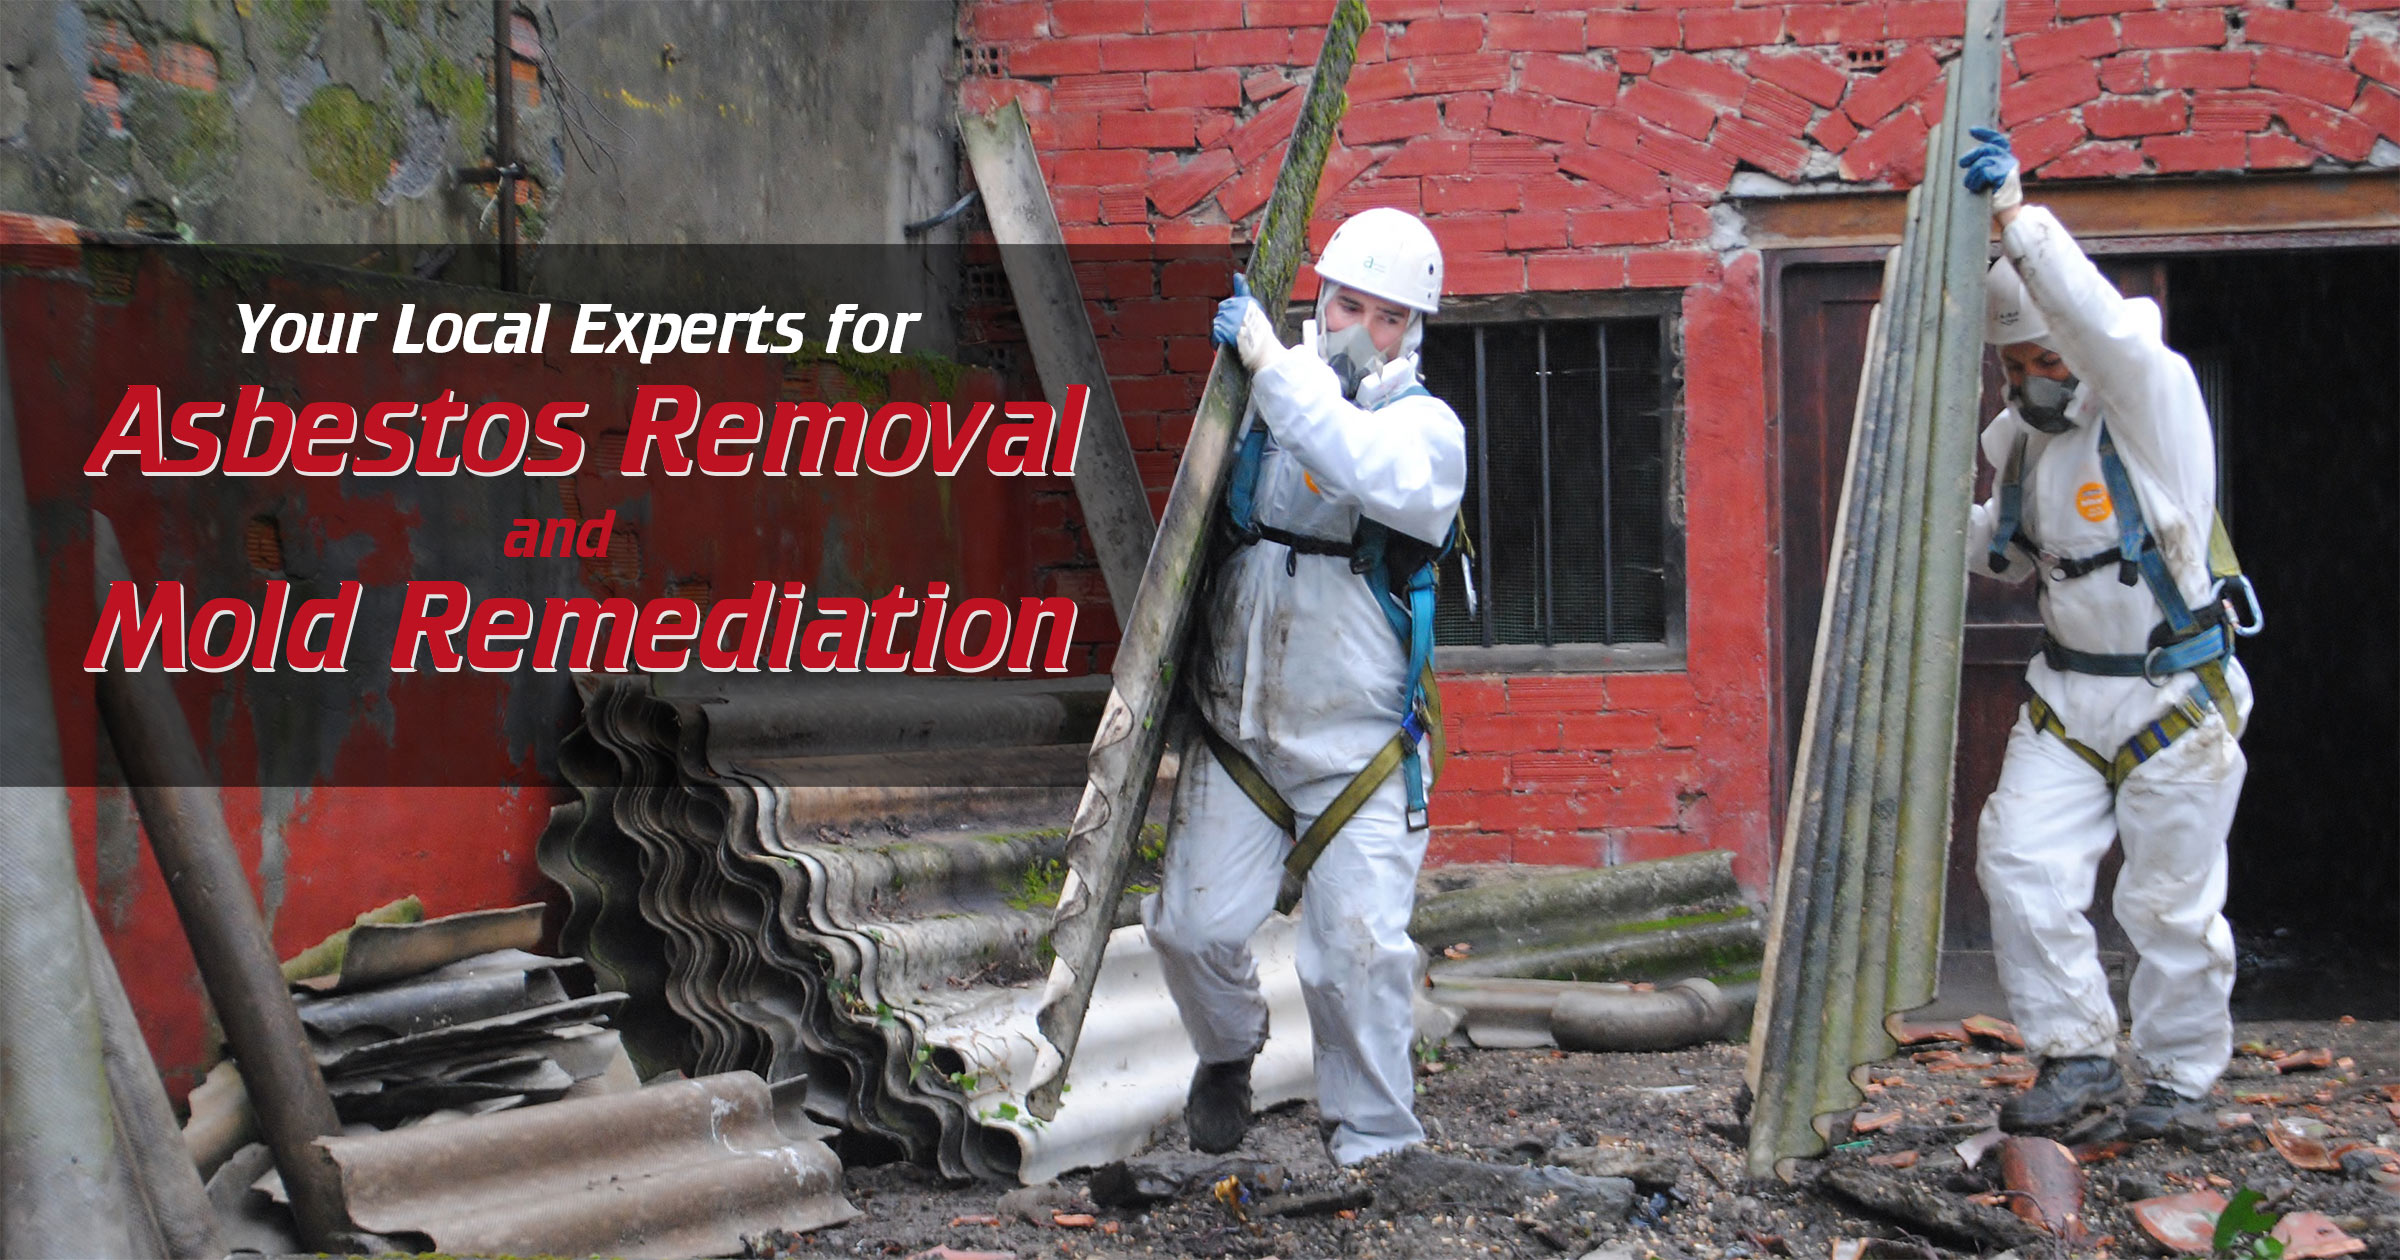 Your Local Experts for Asbestos Removal and Mold Remediation